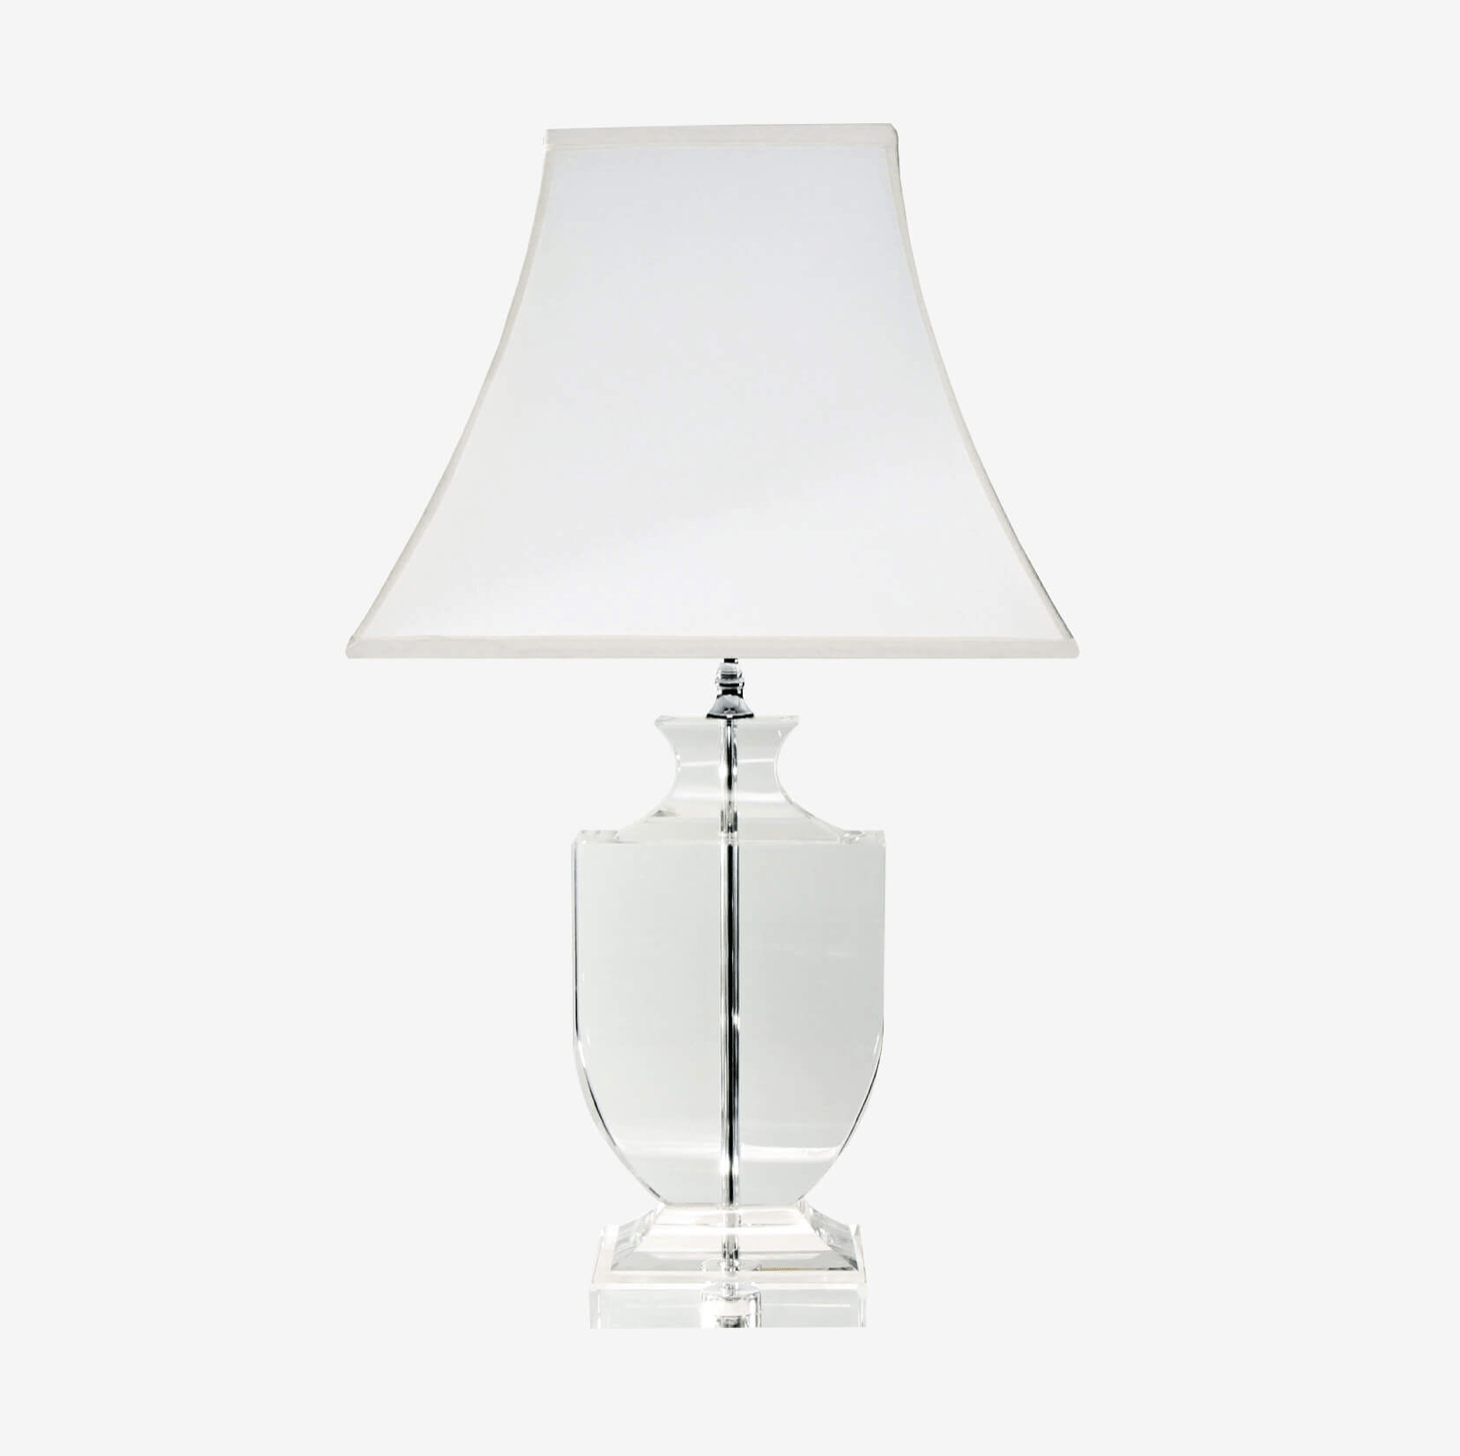 Table Lamps Crest Table Lamp Base lighting shops lighting stores LED lights  lighting designer